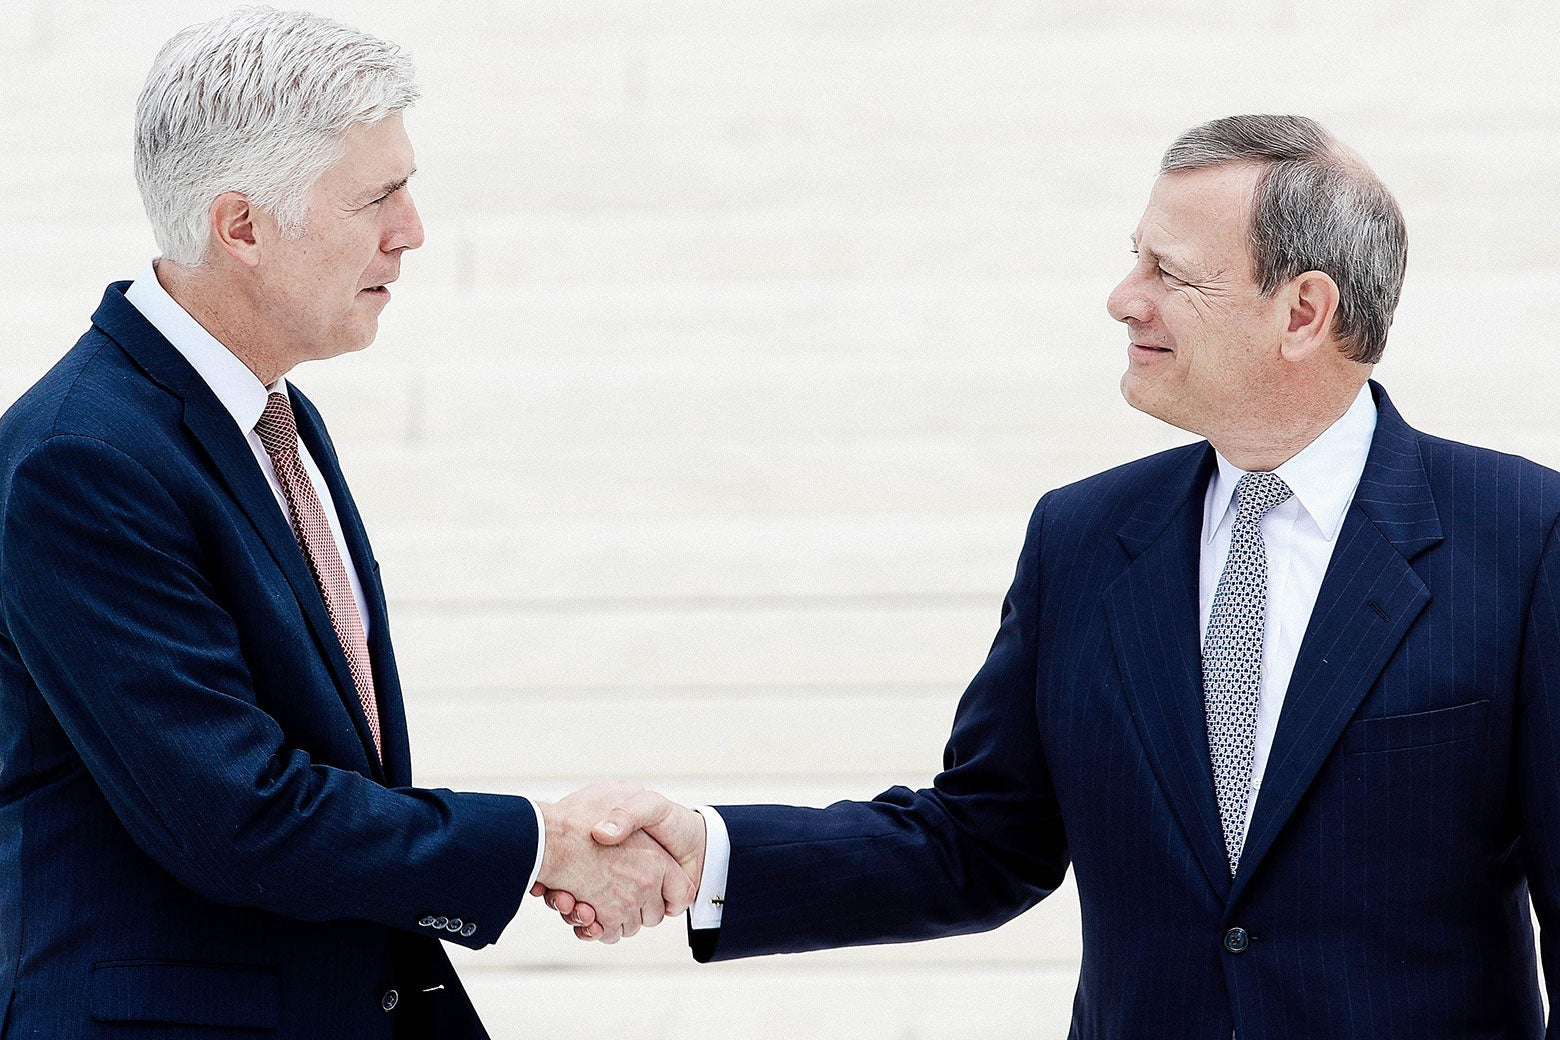 Neil Gorsuch shakes hands with John Roberts.